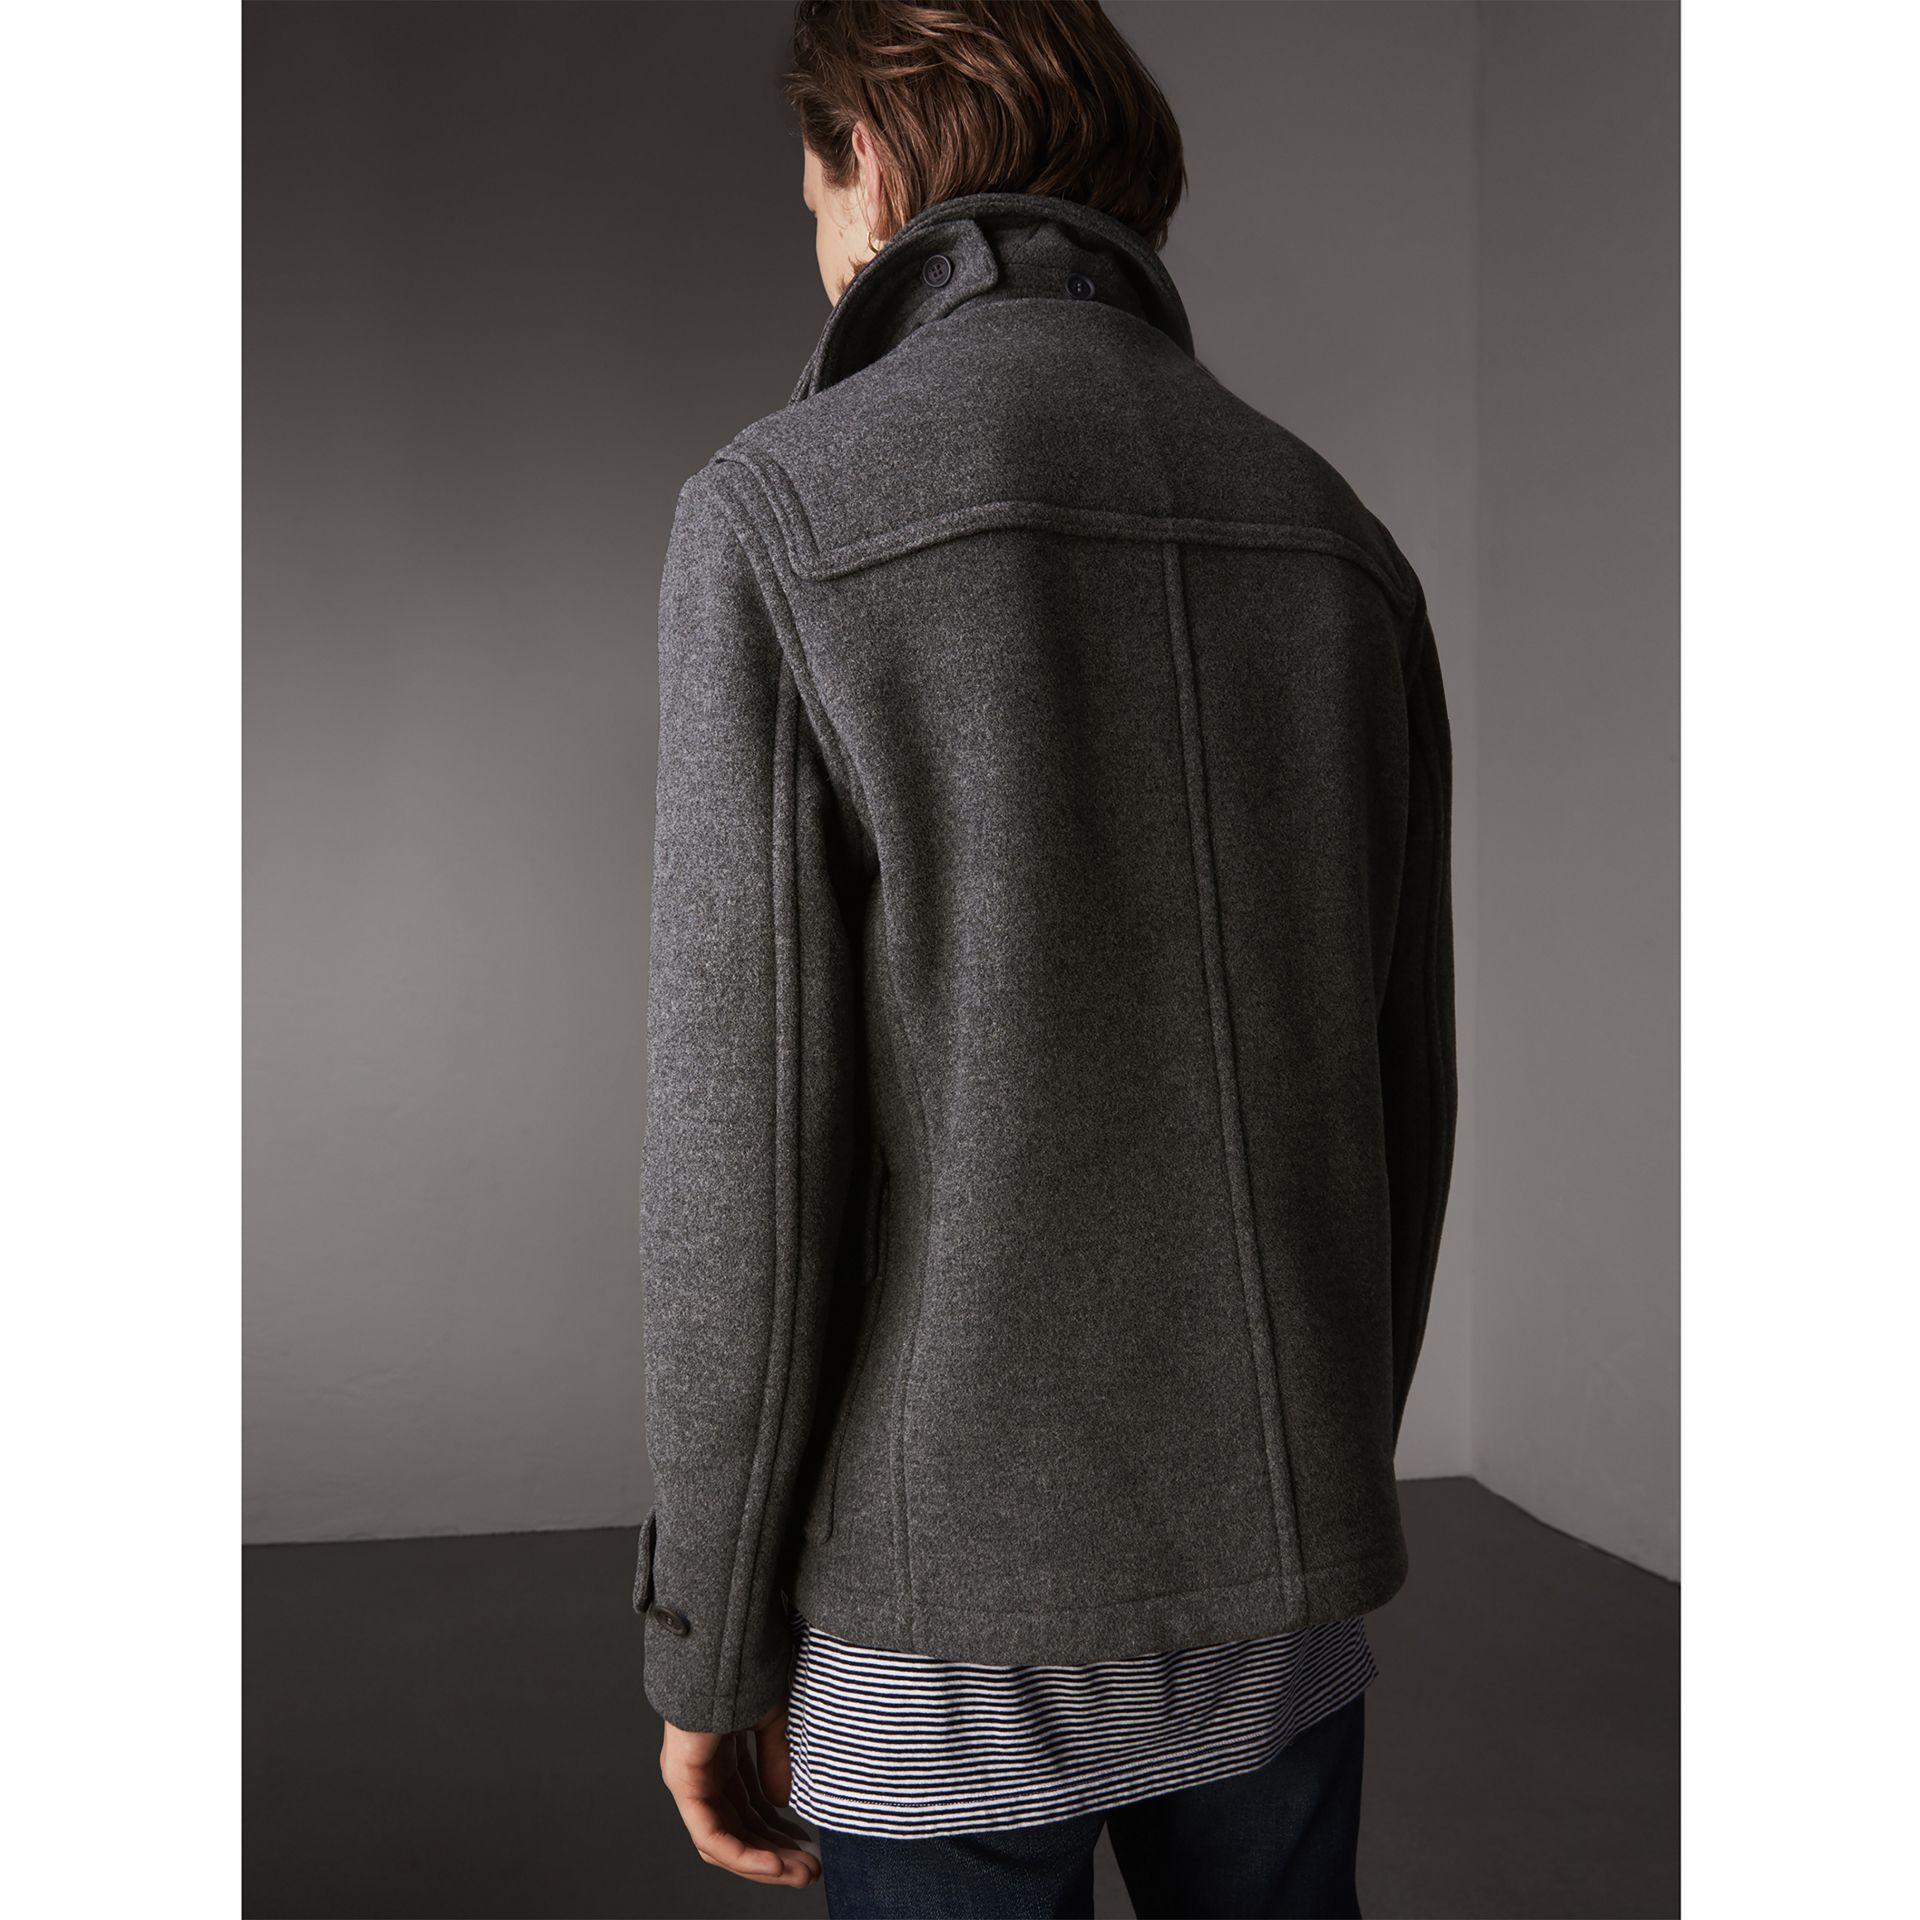 Wool Duffle Jacket with Detachable Hood in Mid Grey Melange - Men | Burberry - gallery image 3